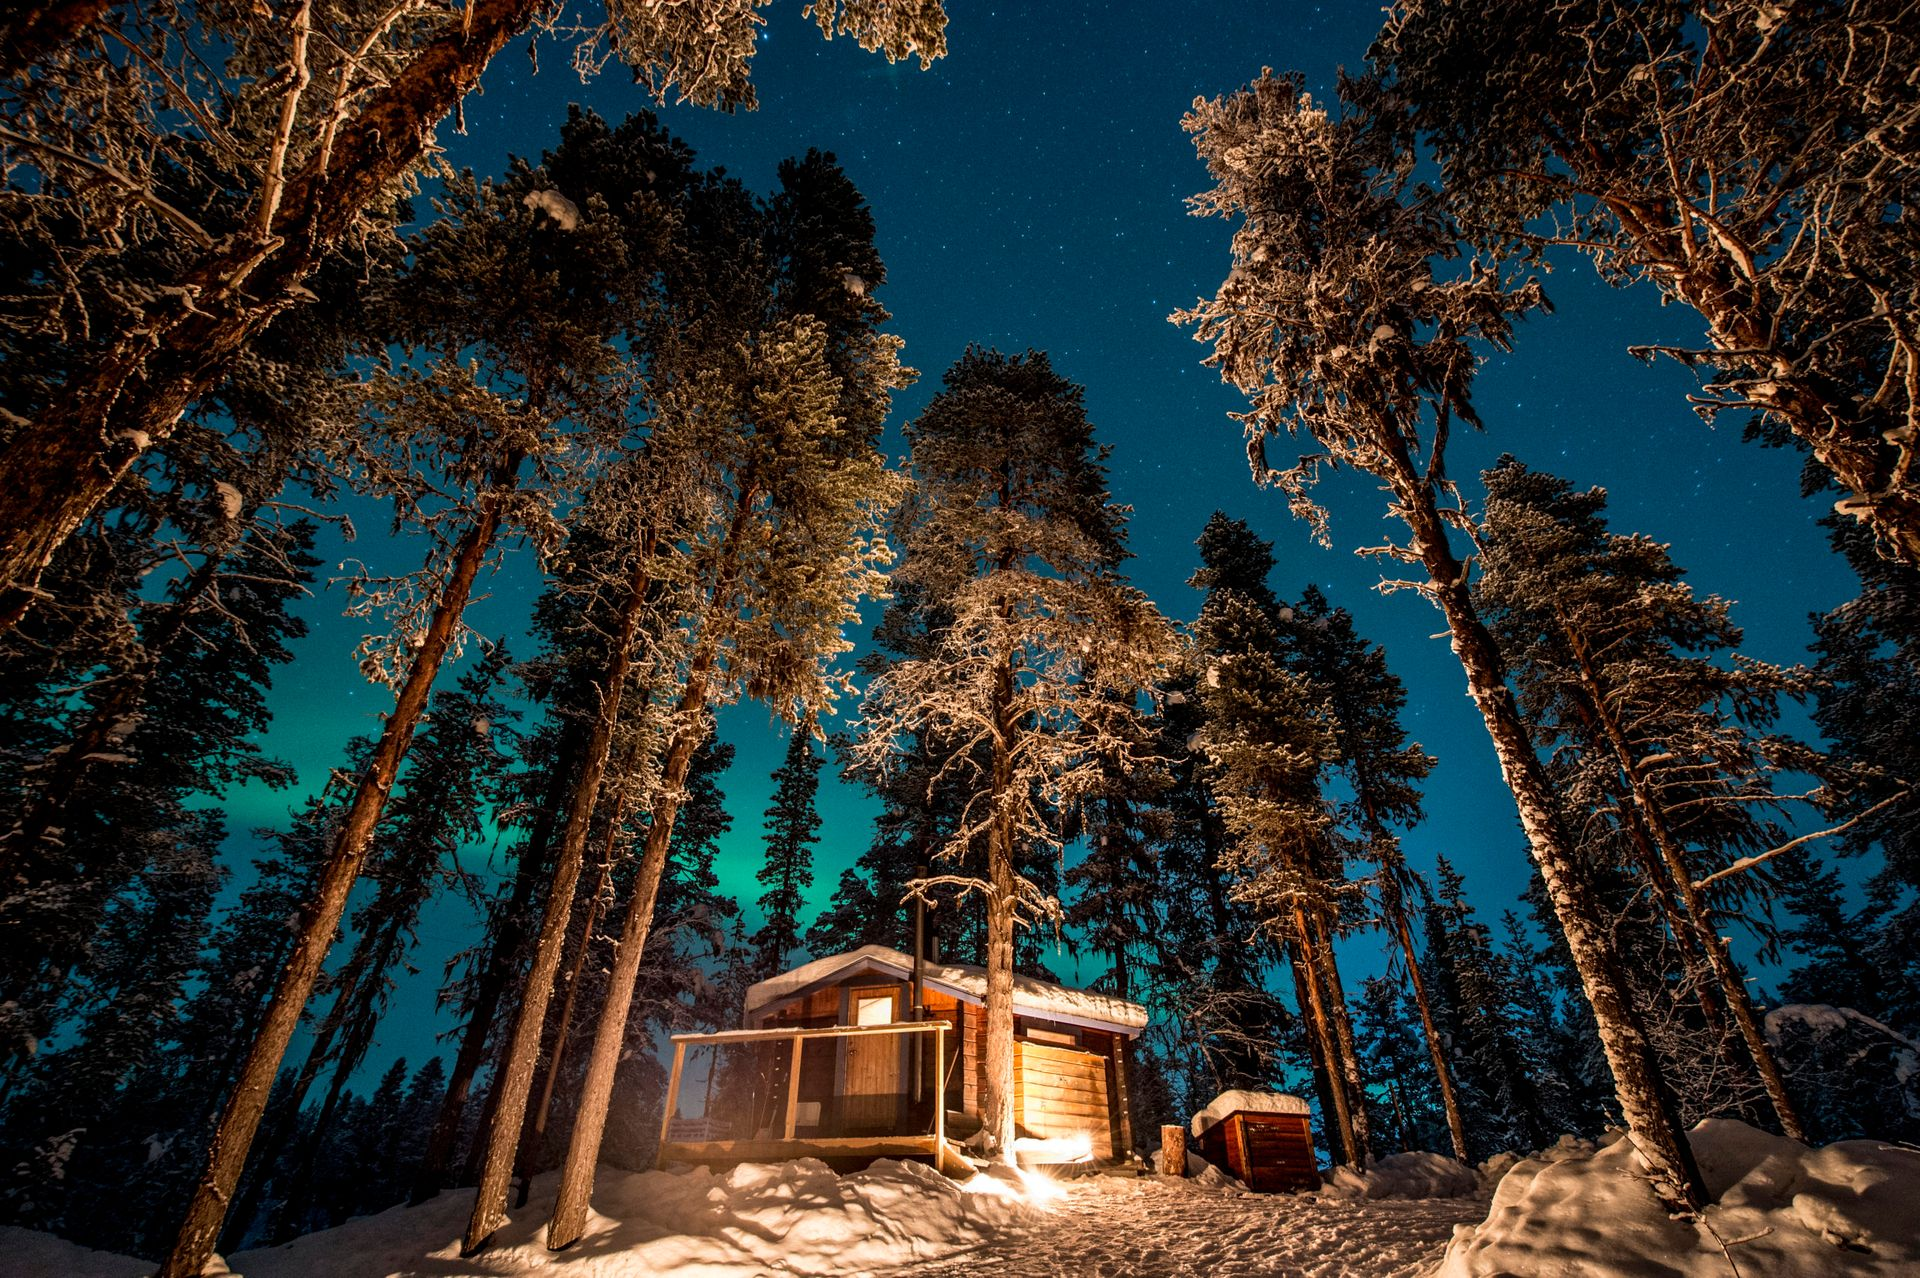 A cabin in a snowy forrest at night.